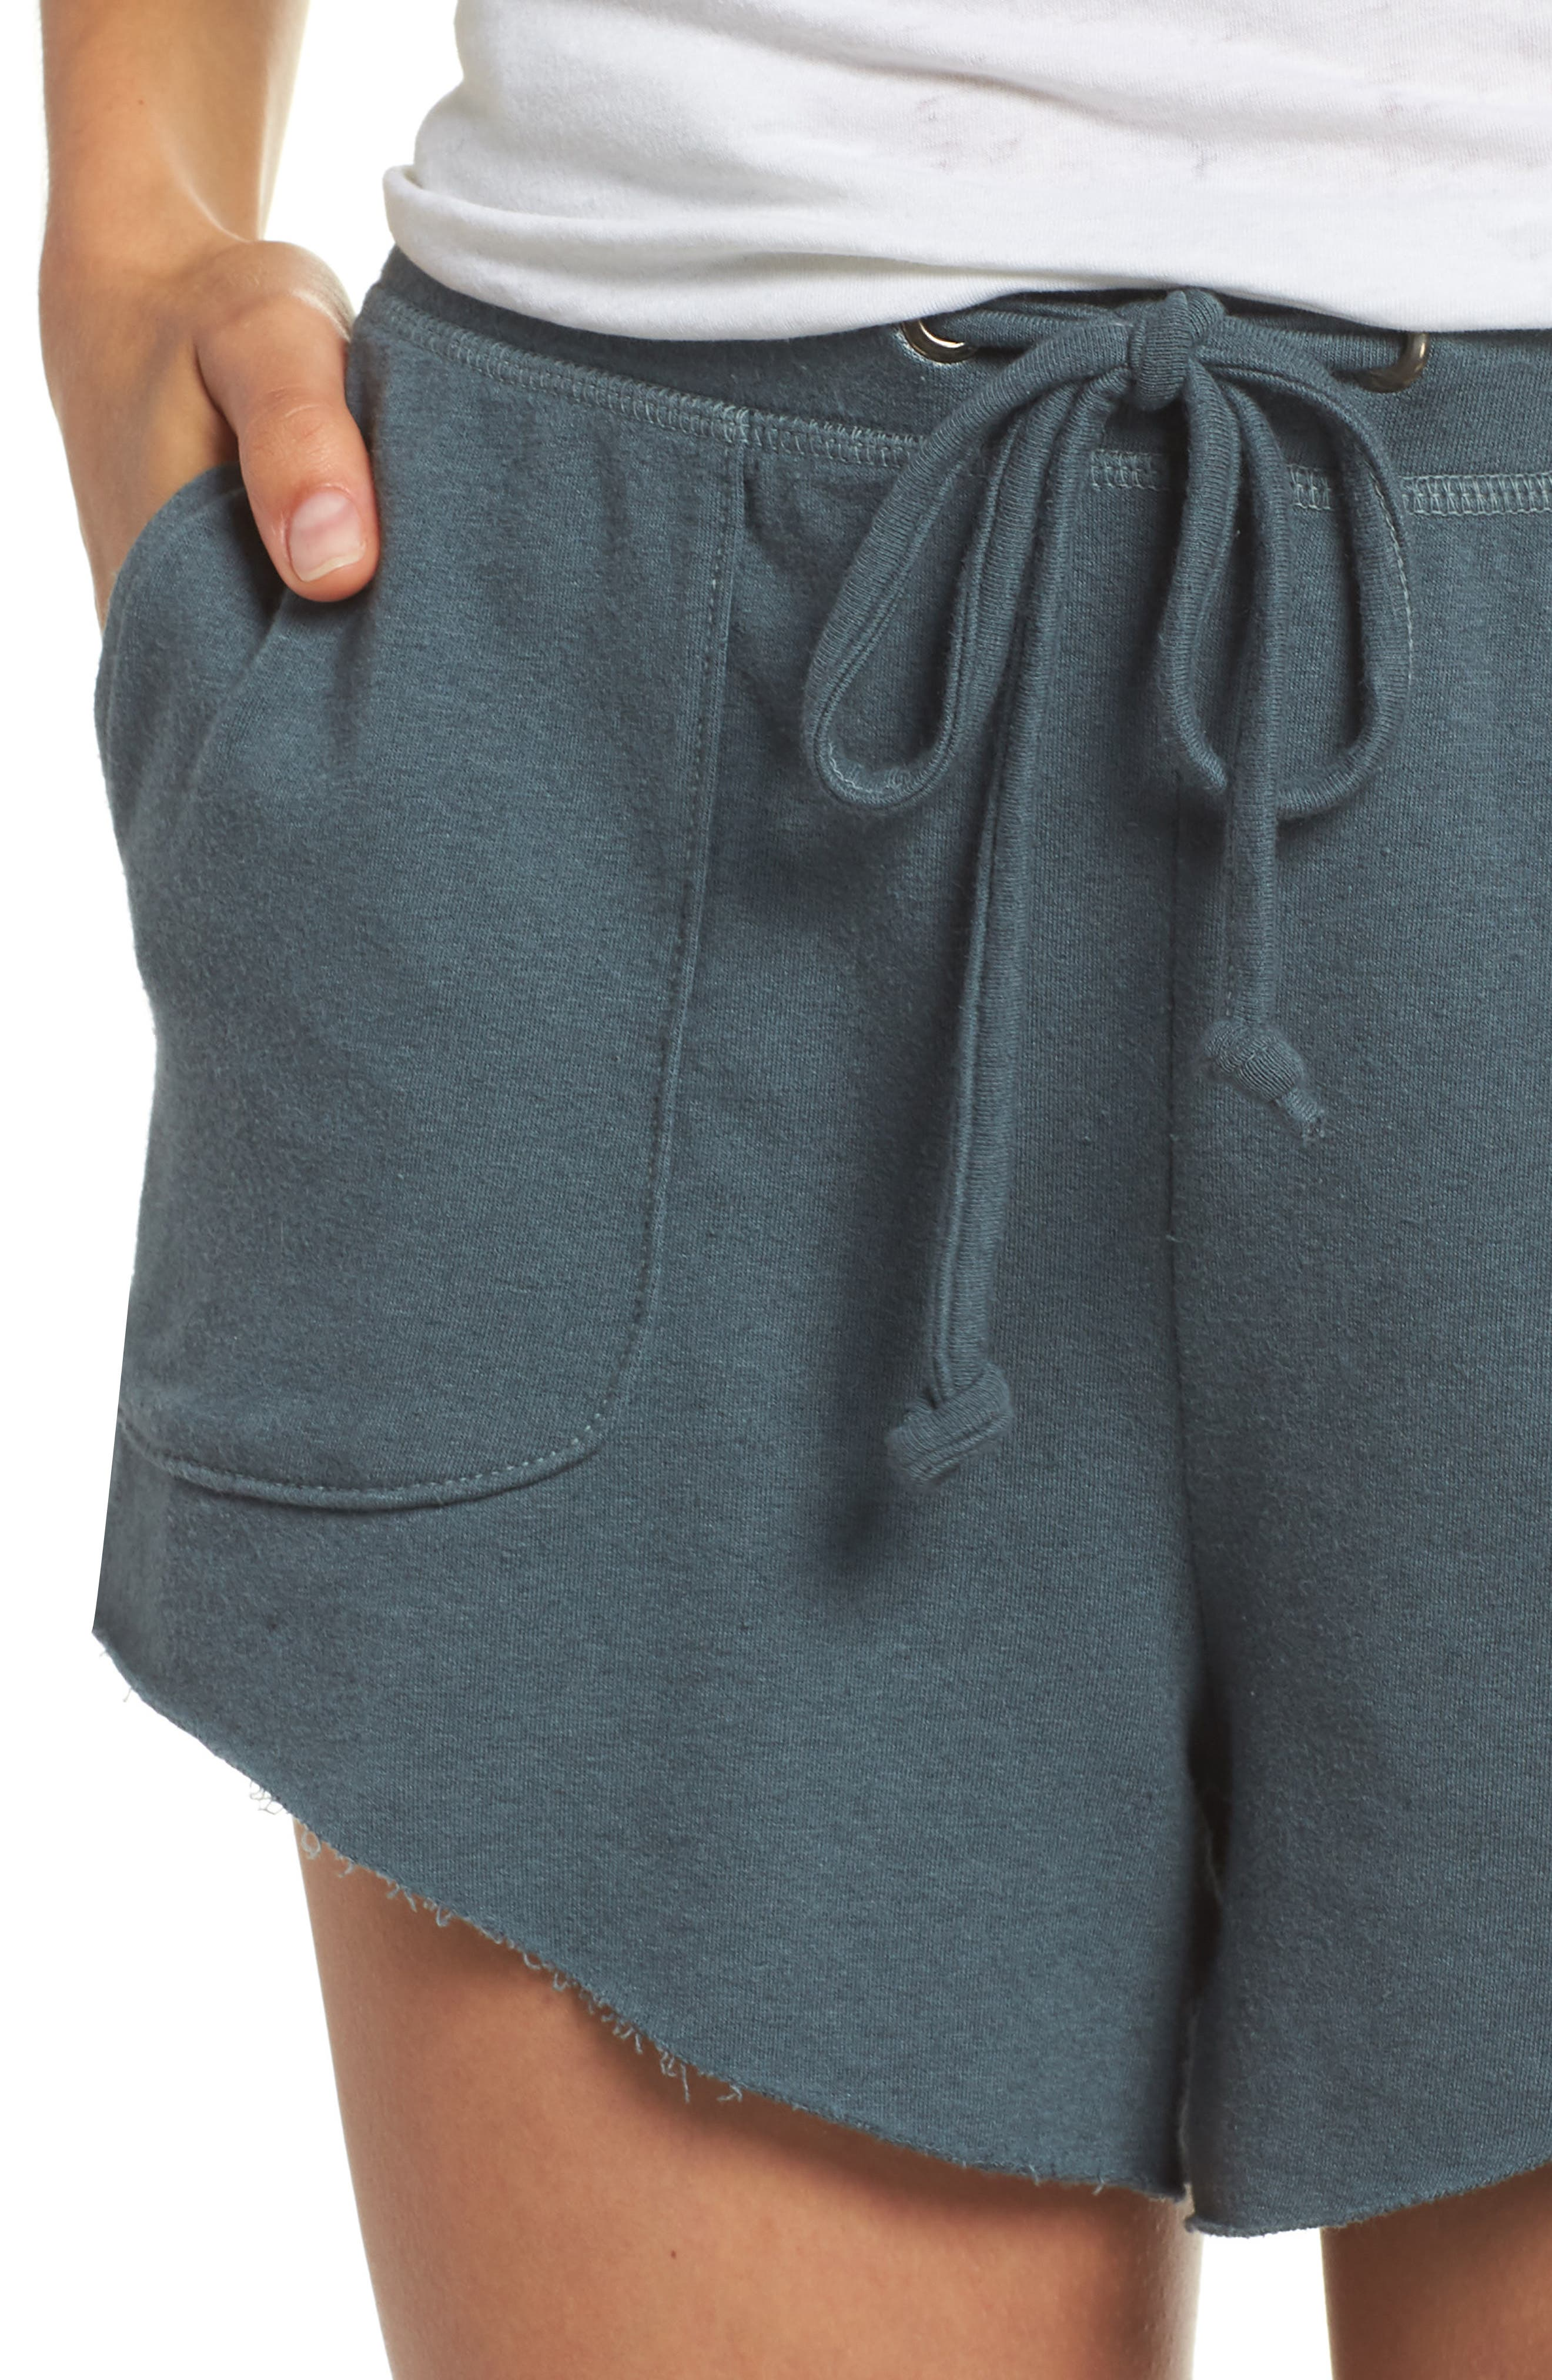 Raw Cut Lounge Shorts,                             Alternate thumbnail 4, color,                             021